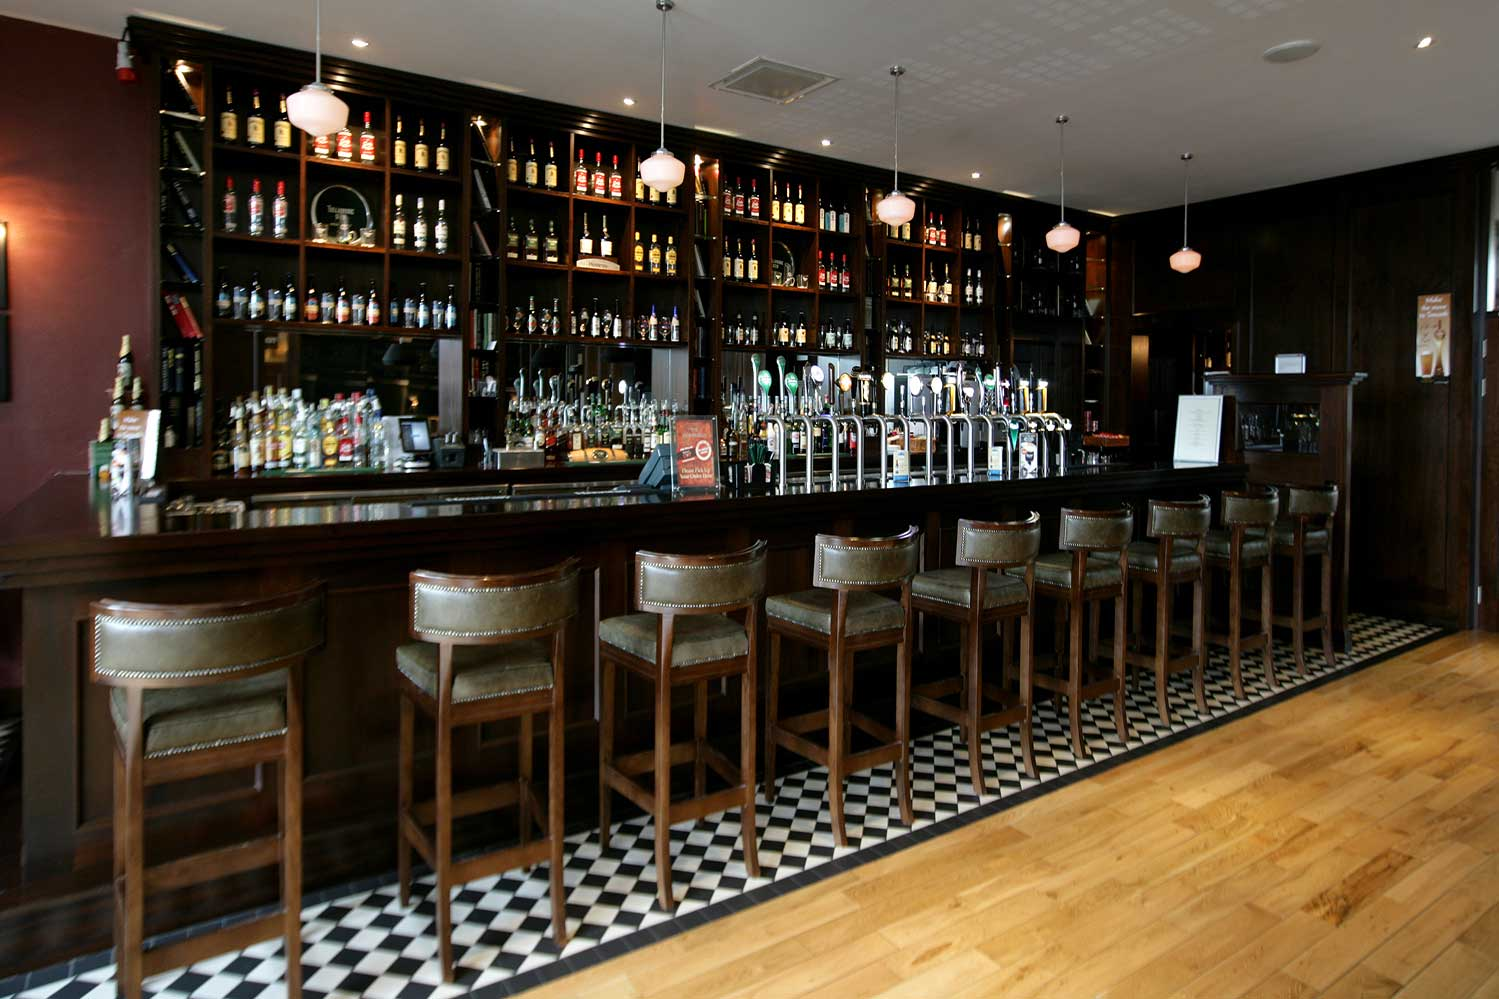 Bewley's Hotel Bar design - interior view of bar with stools lined up